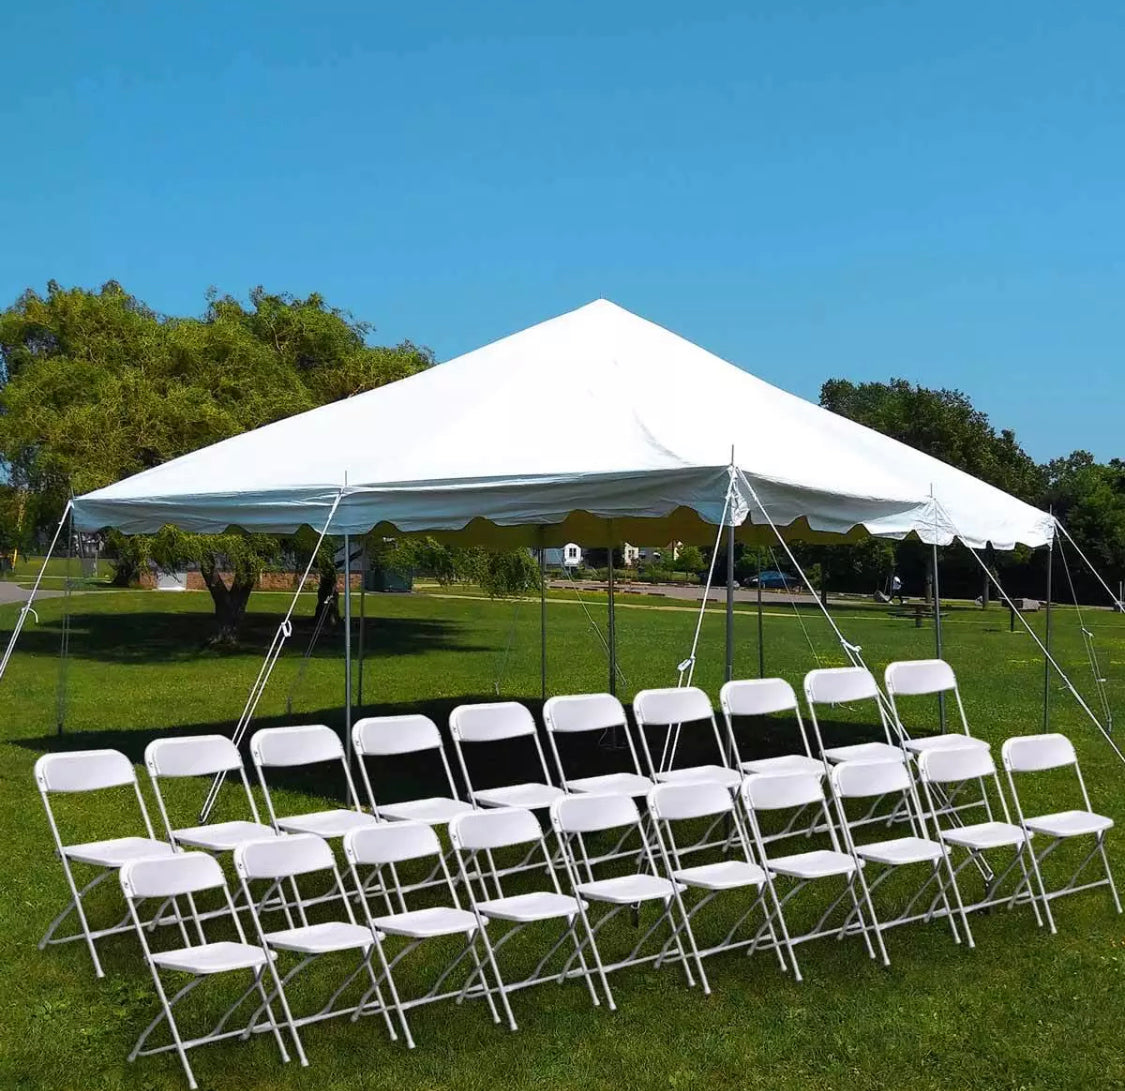 Enjoyable 20 X 20 Commercial Pole Party Tent With Walls 20 Folding Chairs Theyellowbook Wood Chair Design Ideas Theyellowbookinfo